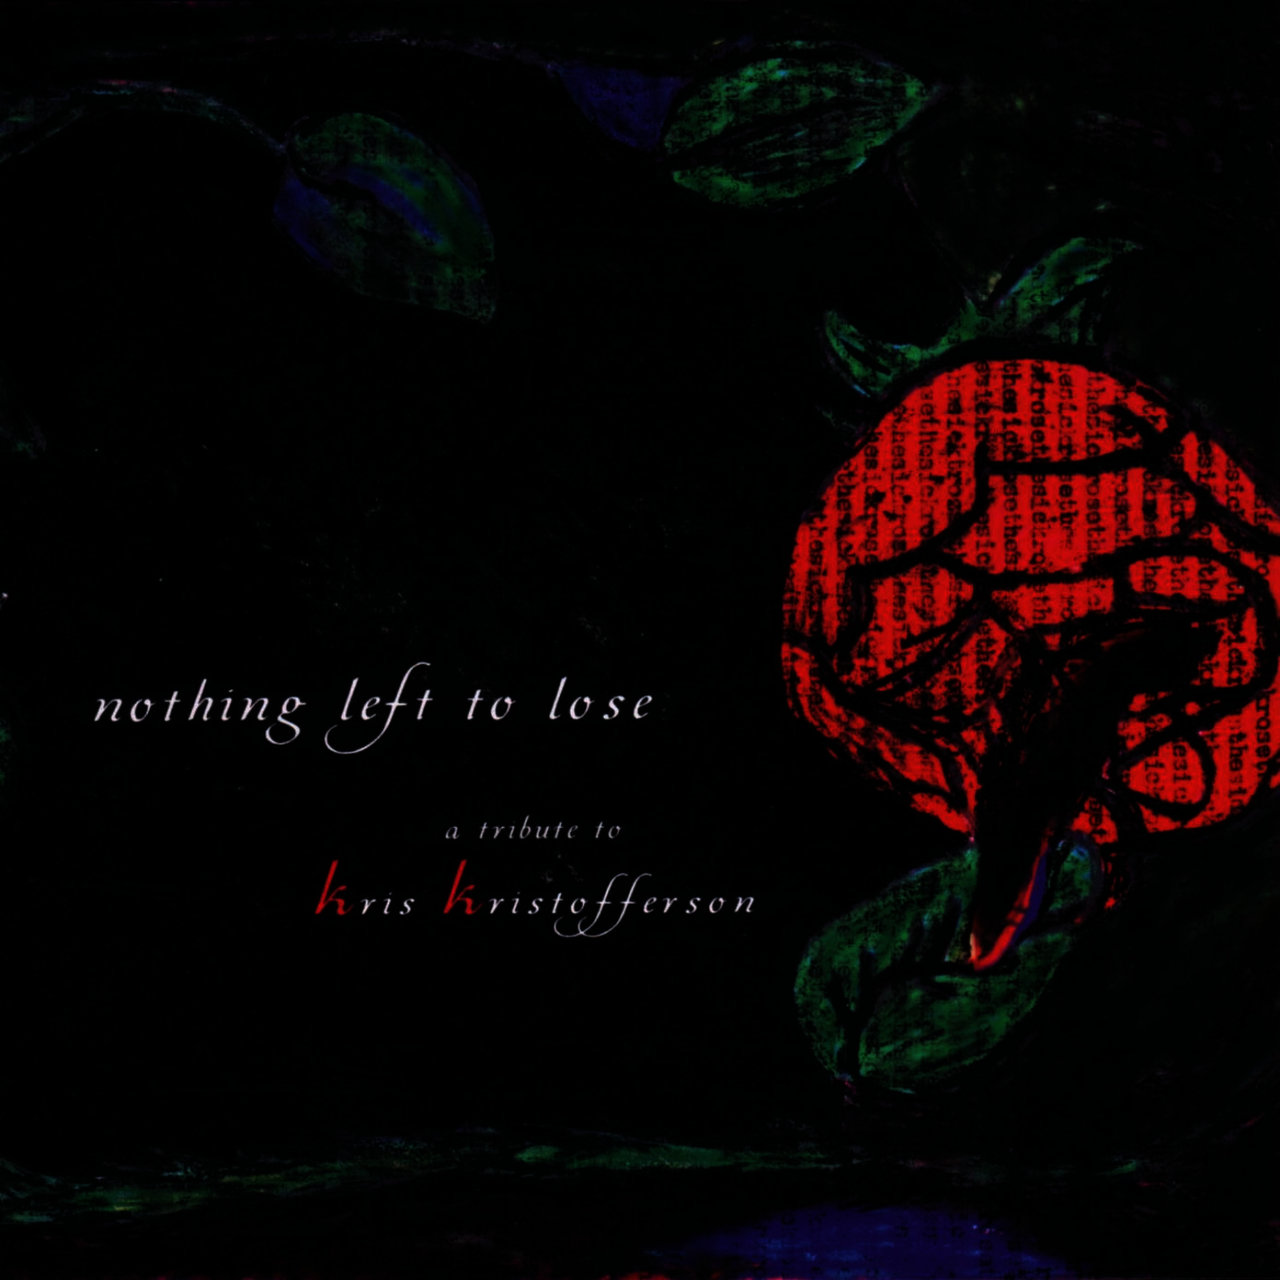 Nothing Left To Lose - A Tribute To Kris Kristofferson